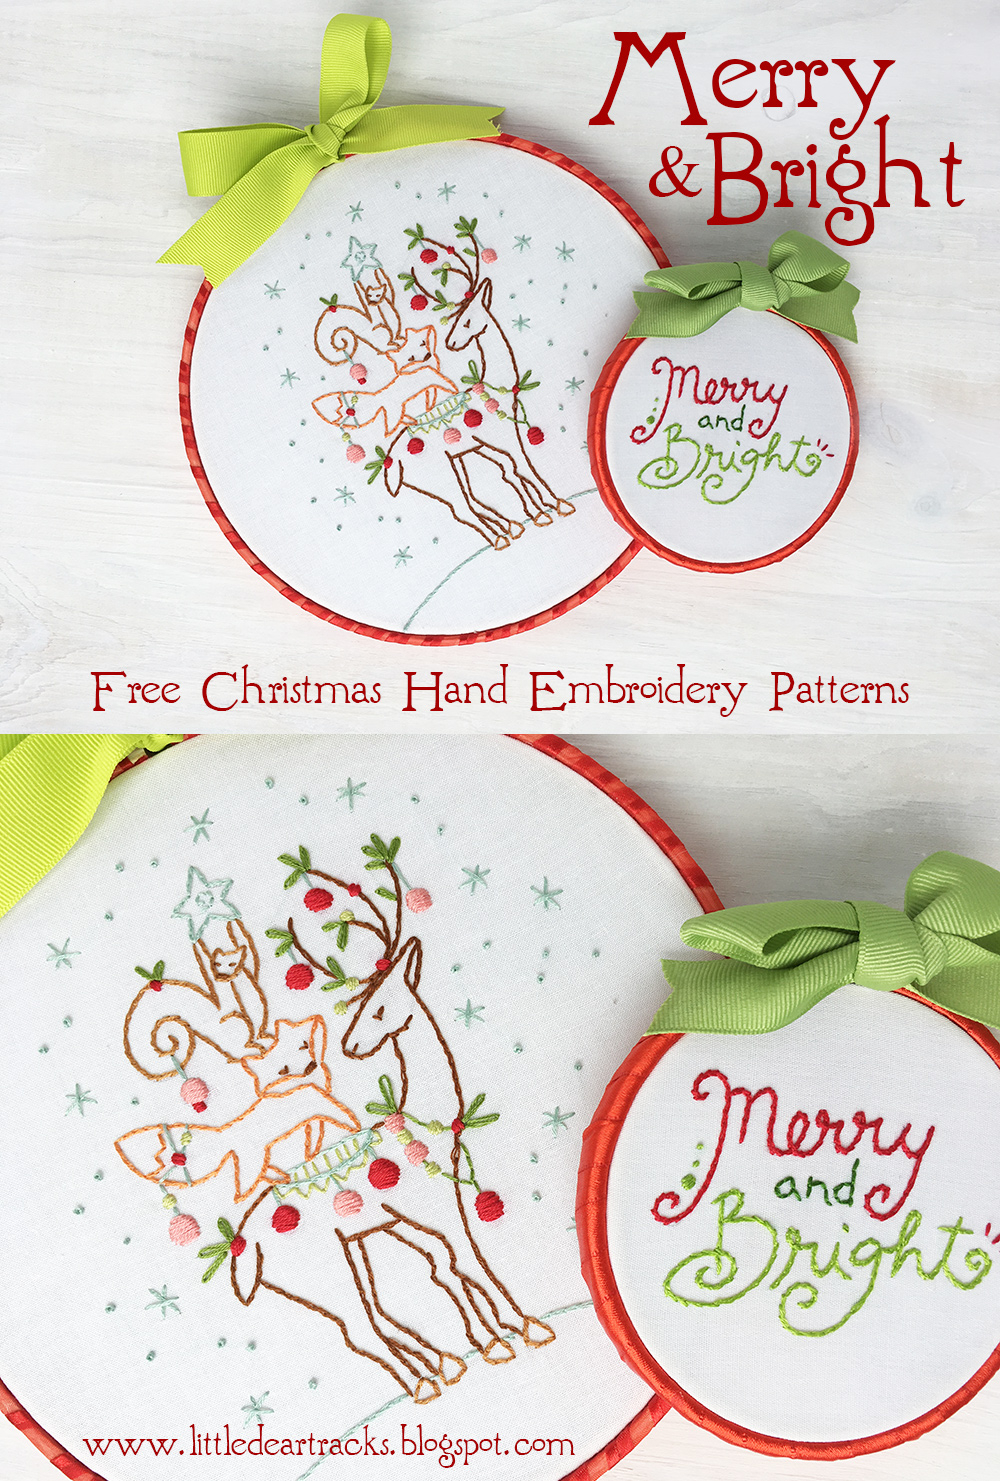 Hand Embroidery Christmas Patterns Little Dear Tracks Free Christmas Embroidery Patterns